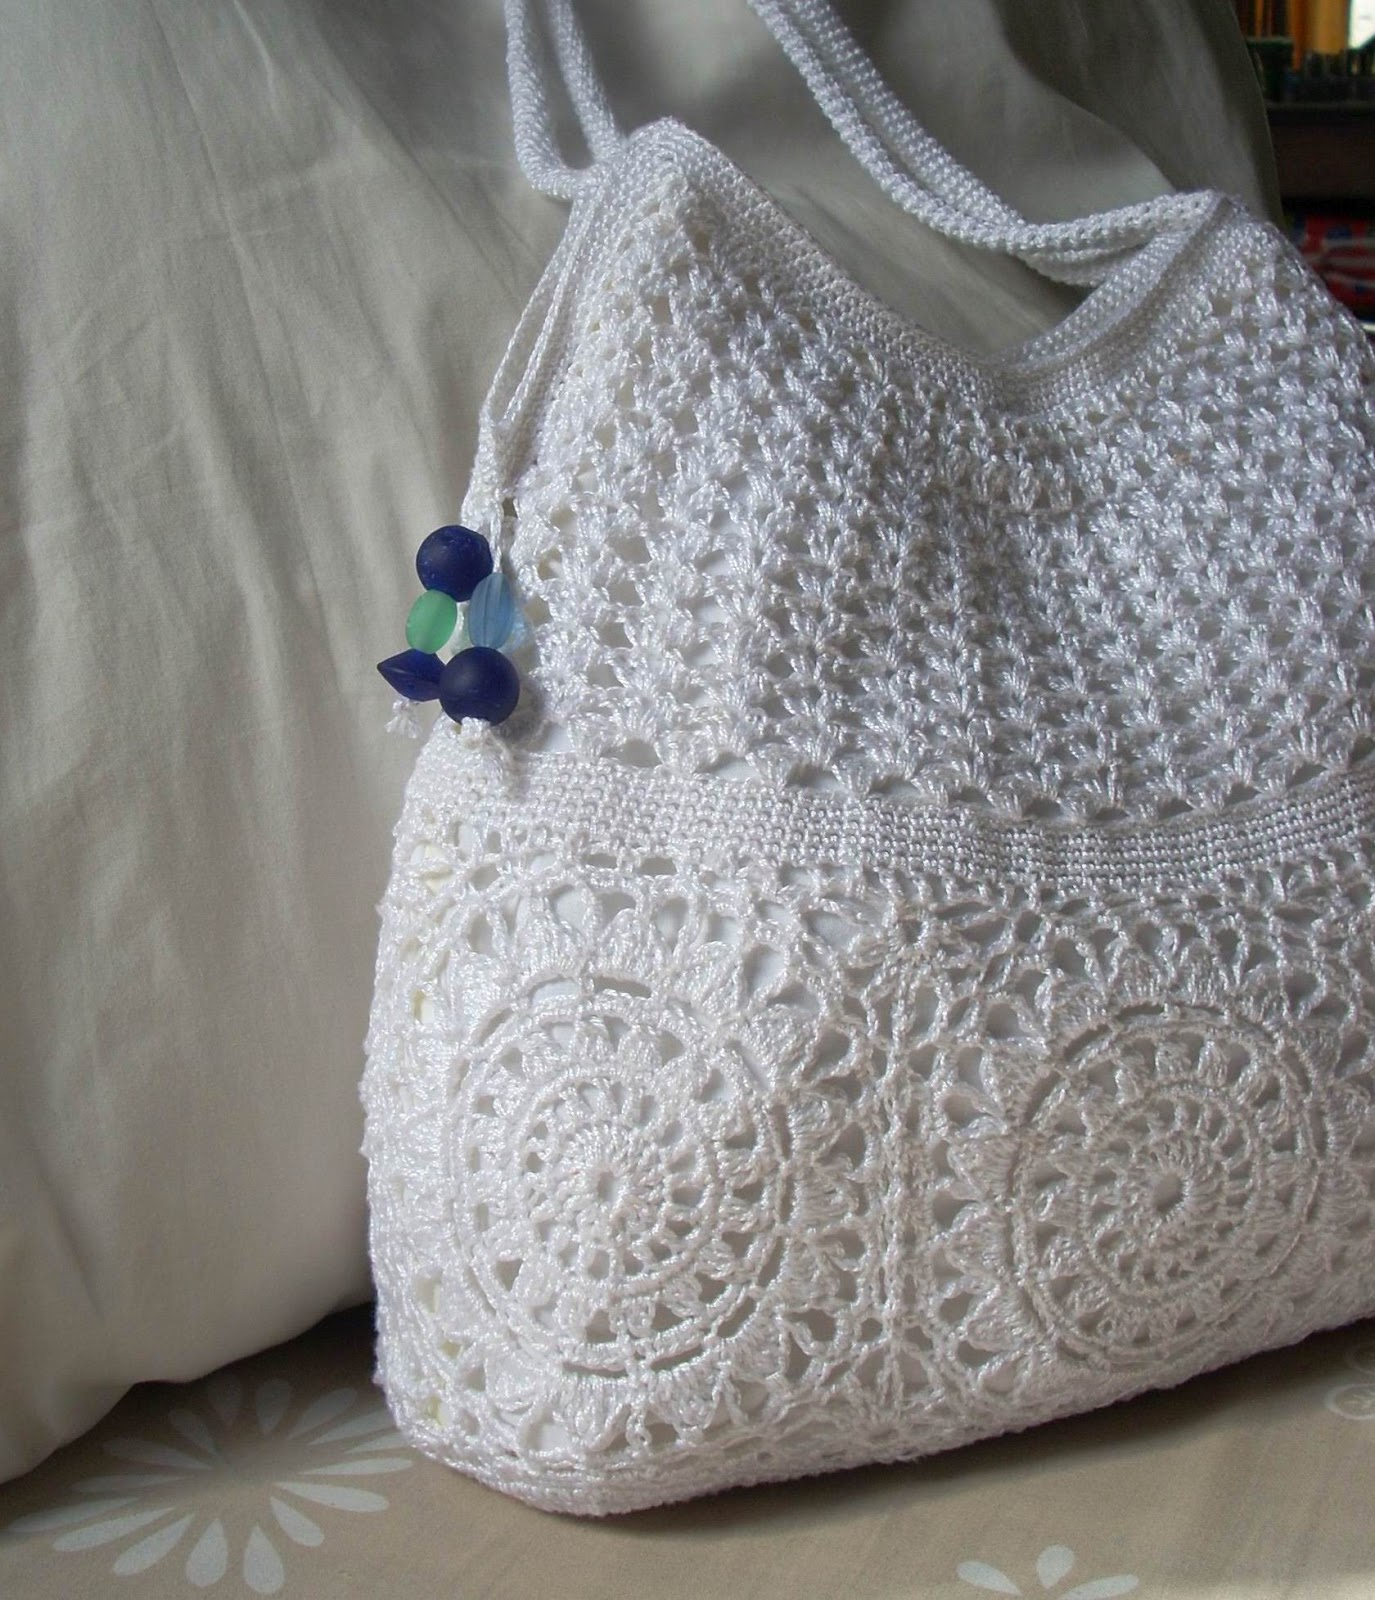 Free Crochet Patterns For Bags : Crochet Bag Patterns On Pinterest Crochet Pattern Ideas